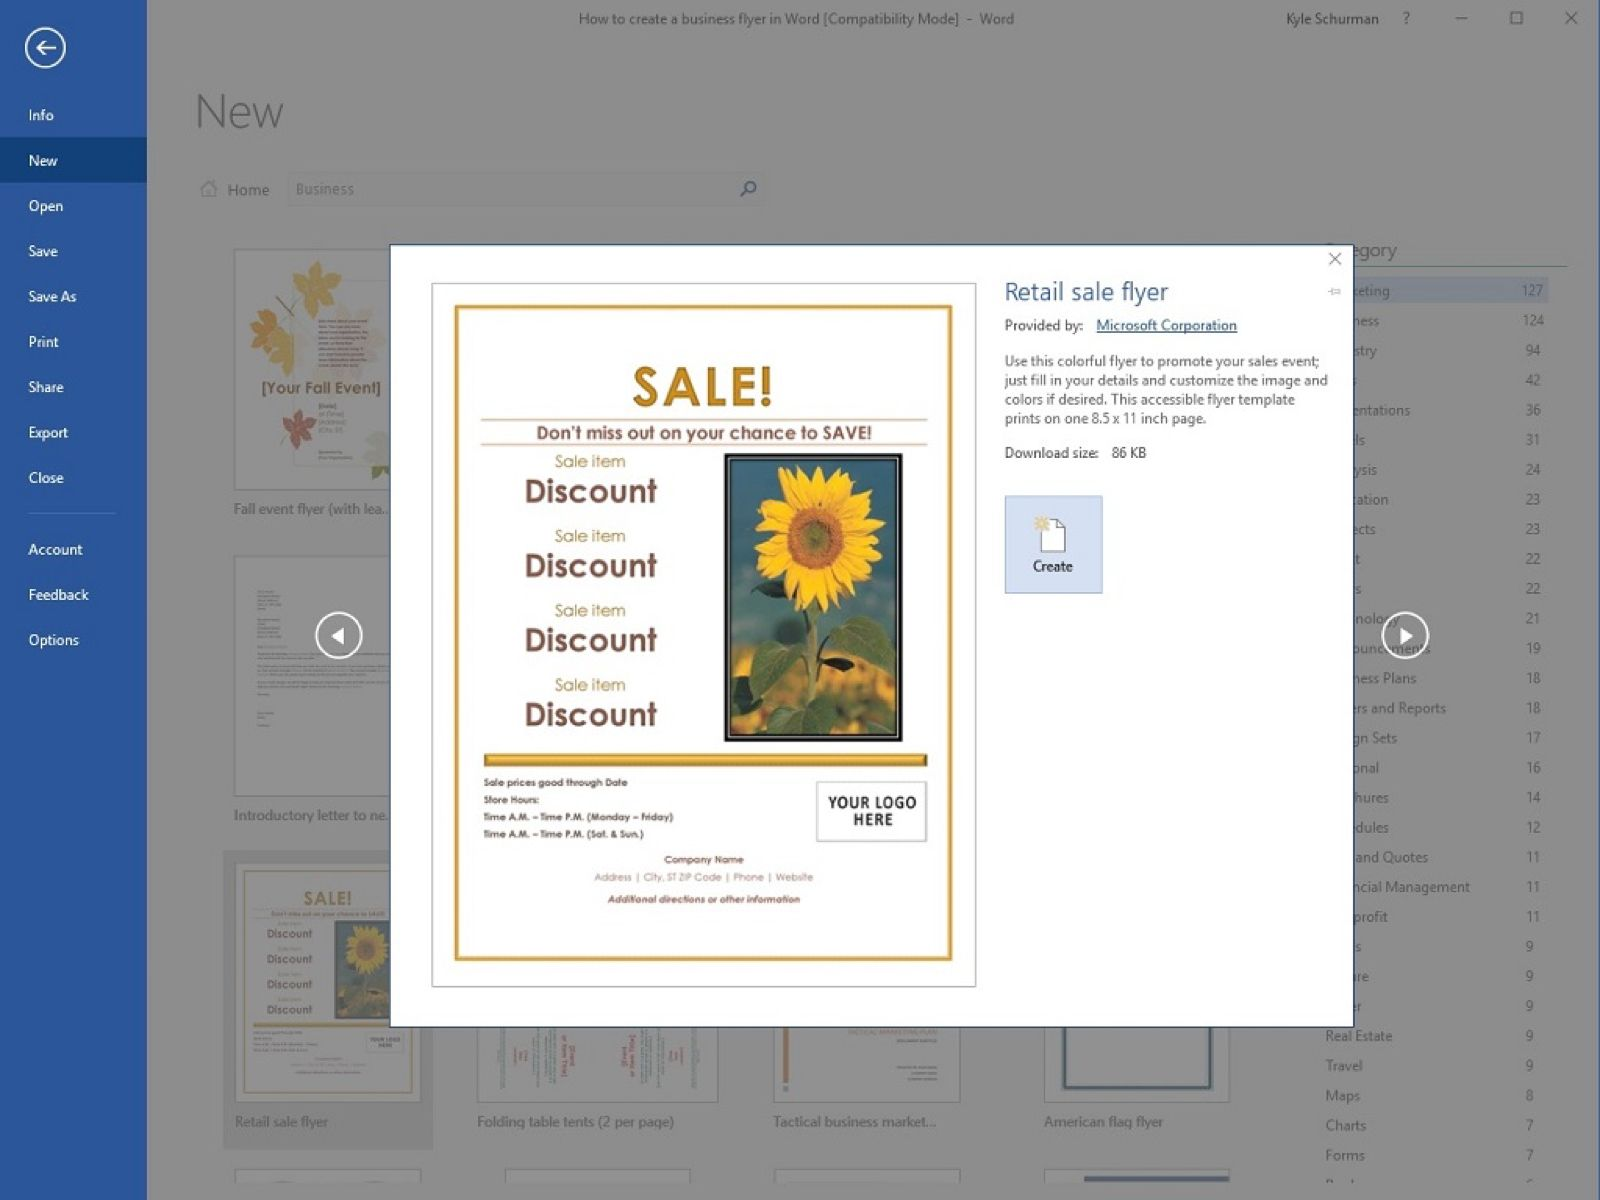 How To Make A Business Flyer In Word With Regard To Templates For Flyers In Word Cumed Org Make A Flyer Create Flyers Flyer Template Create a flyer in word